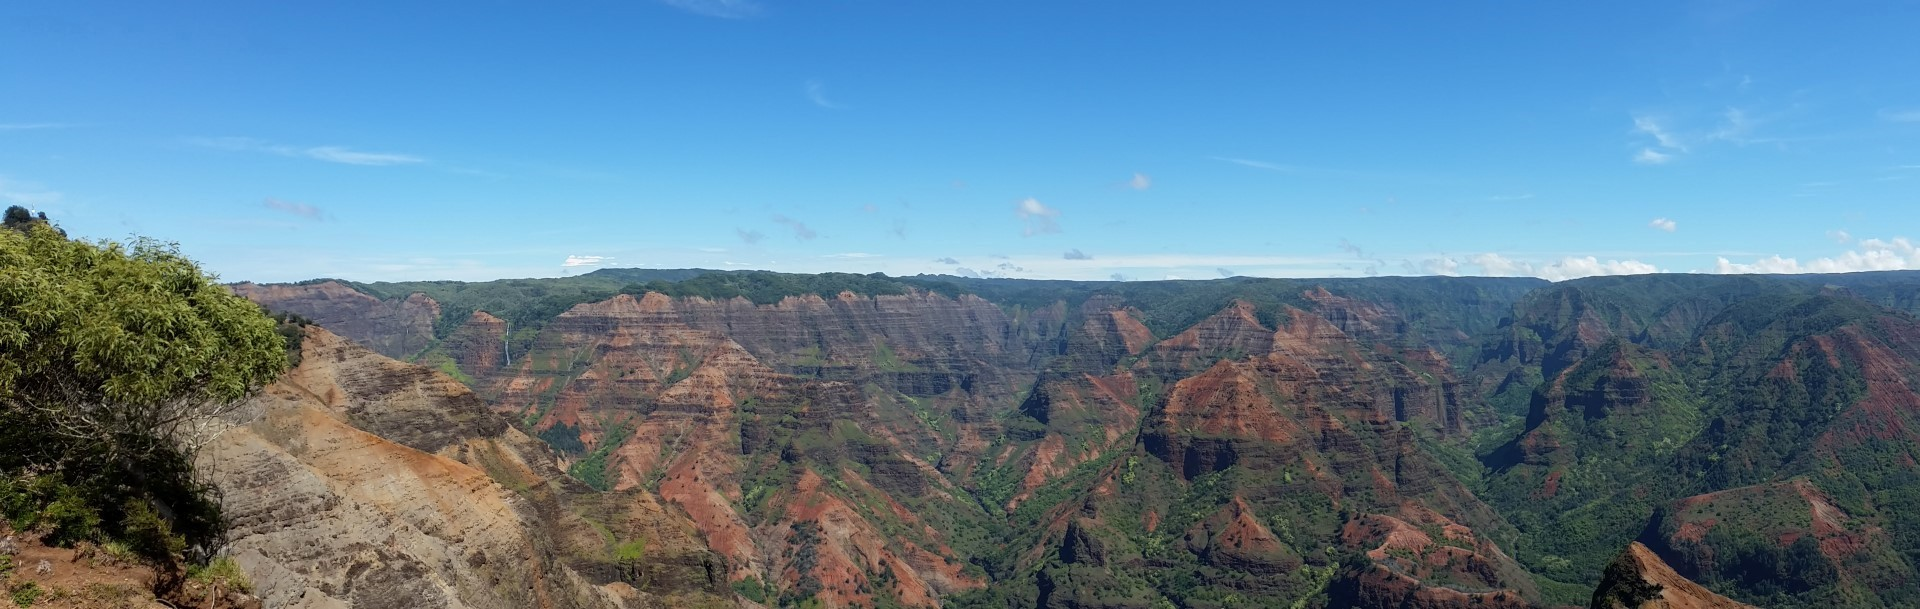 Hawaii Tag 25: Waimea Canyon, Kokee State Park, Kalalau Valley Lookout (2014-10-20)